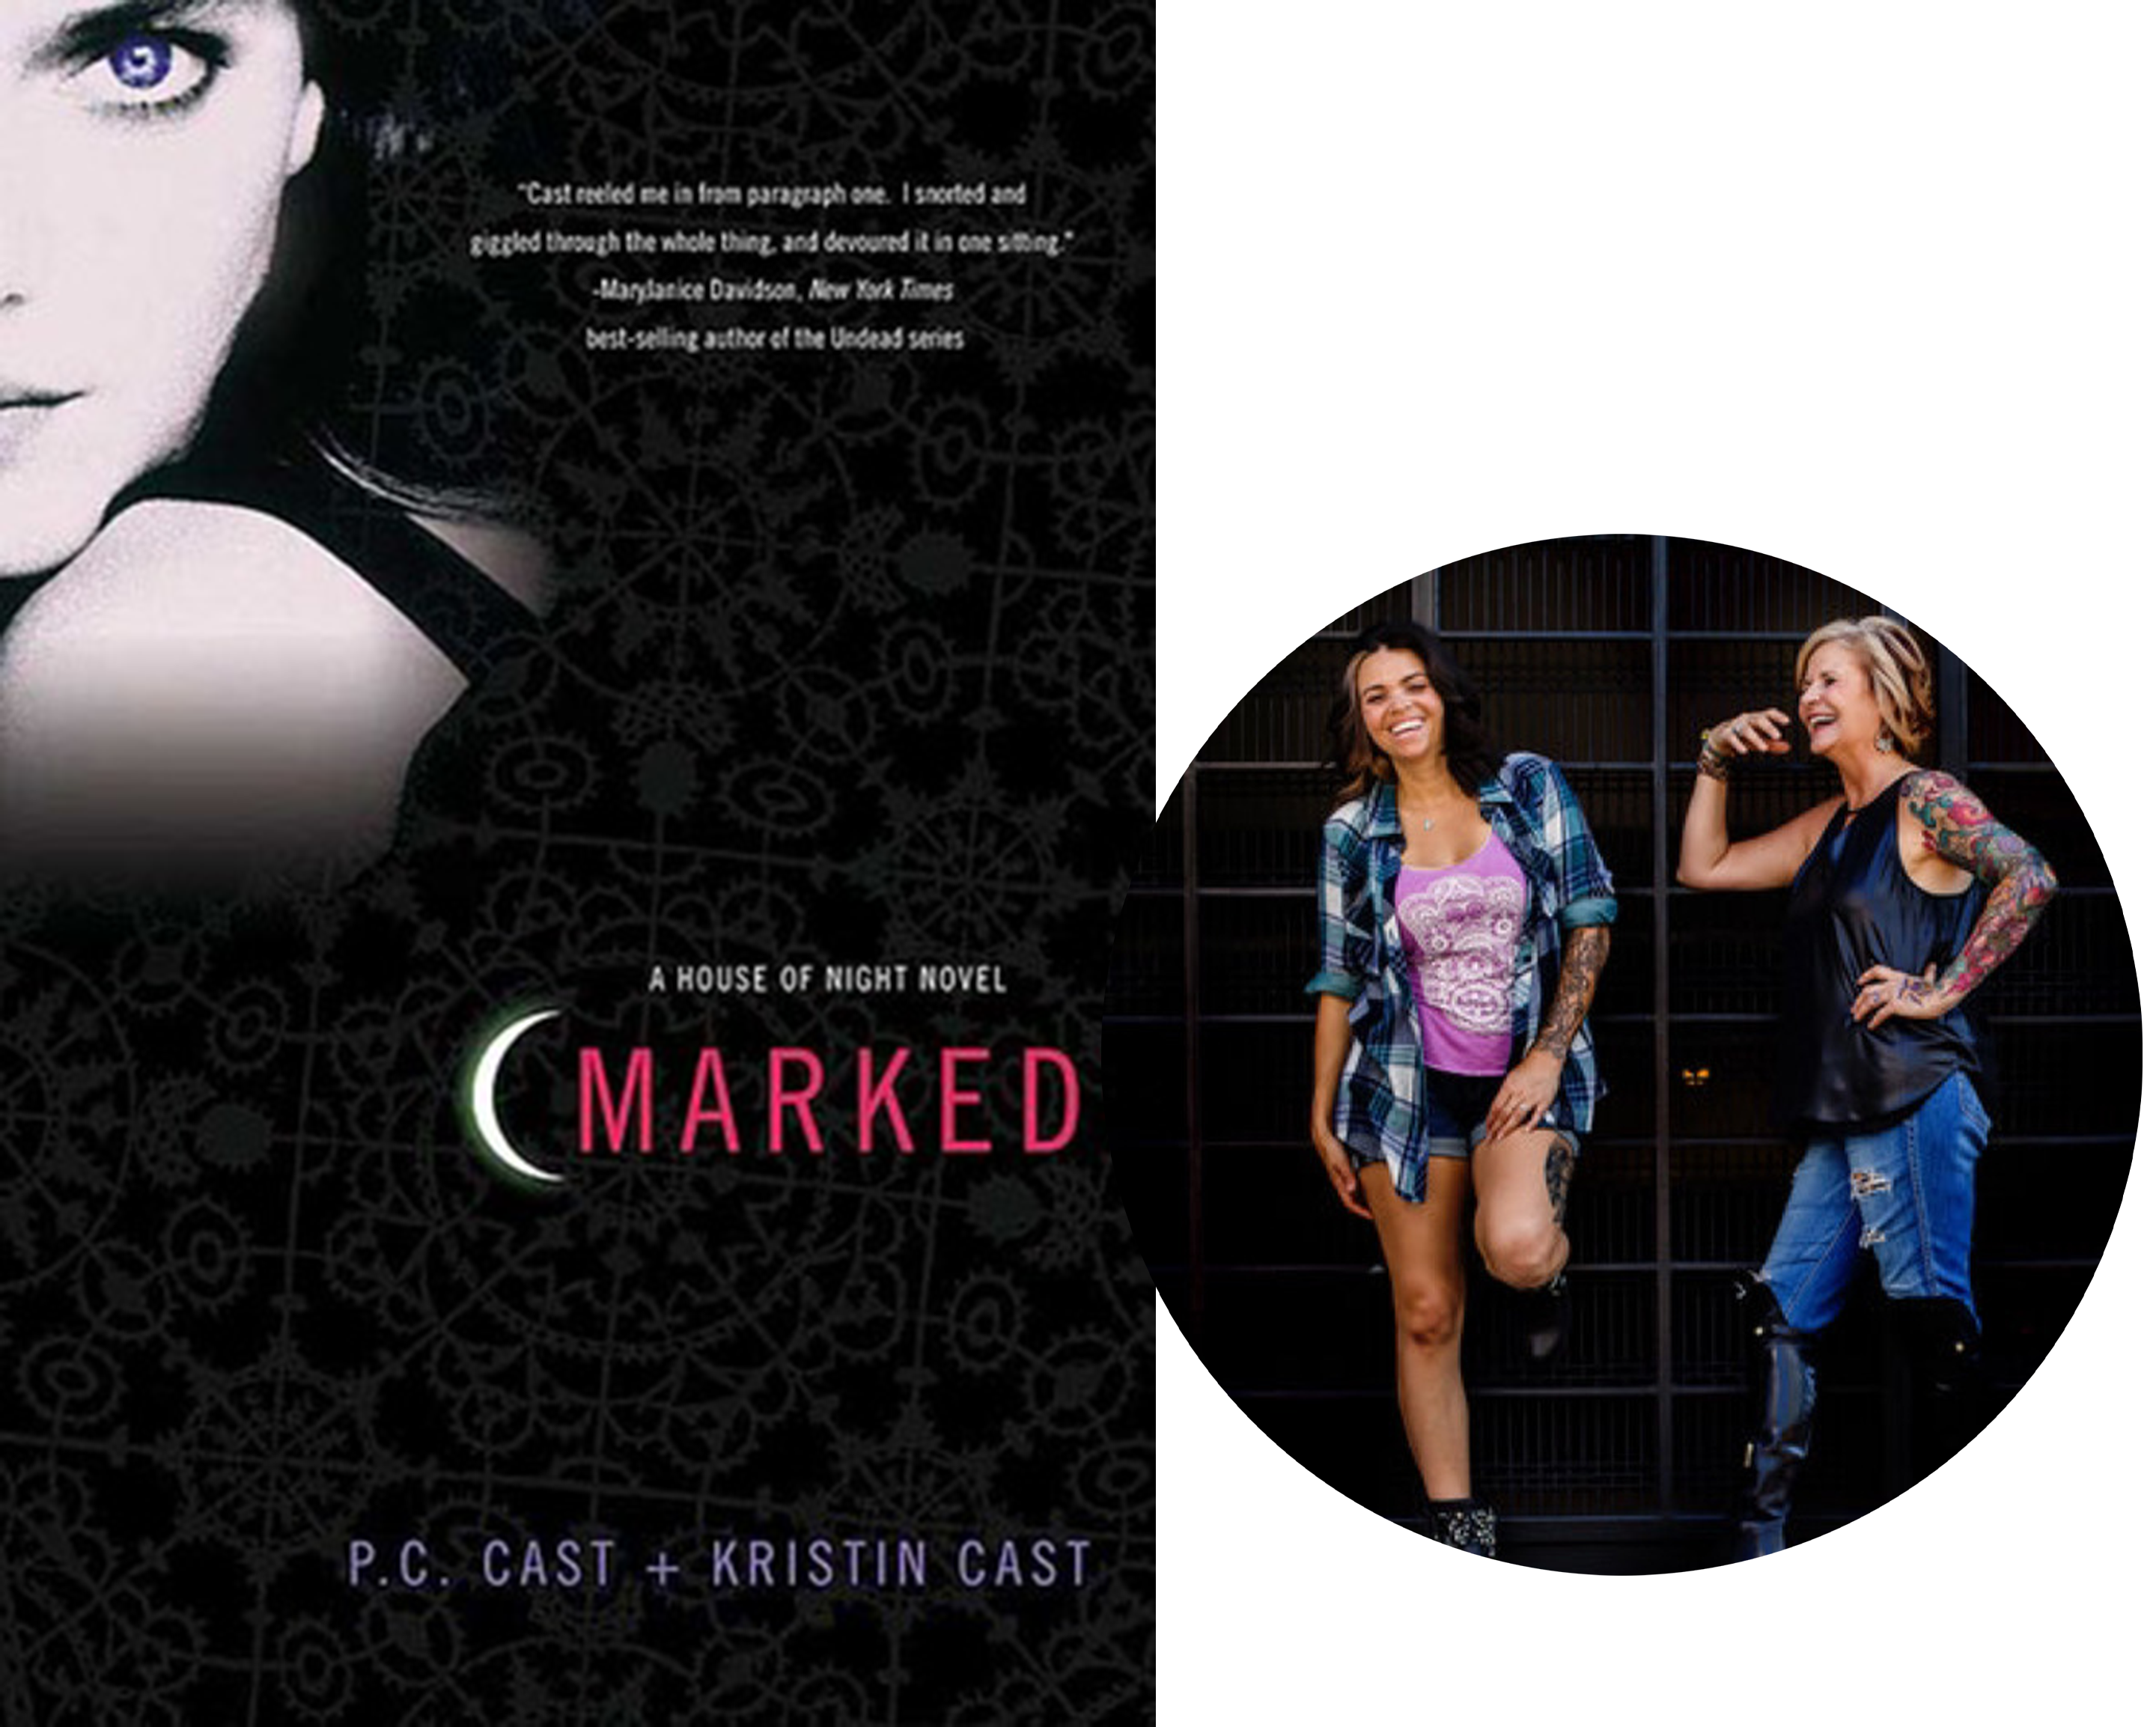 P.C. Cast and Kristin Cast-House of Night